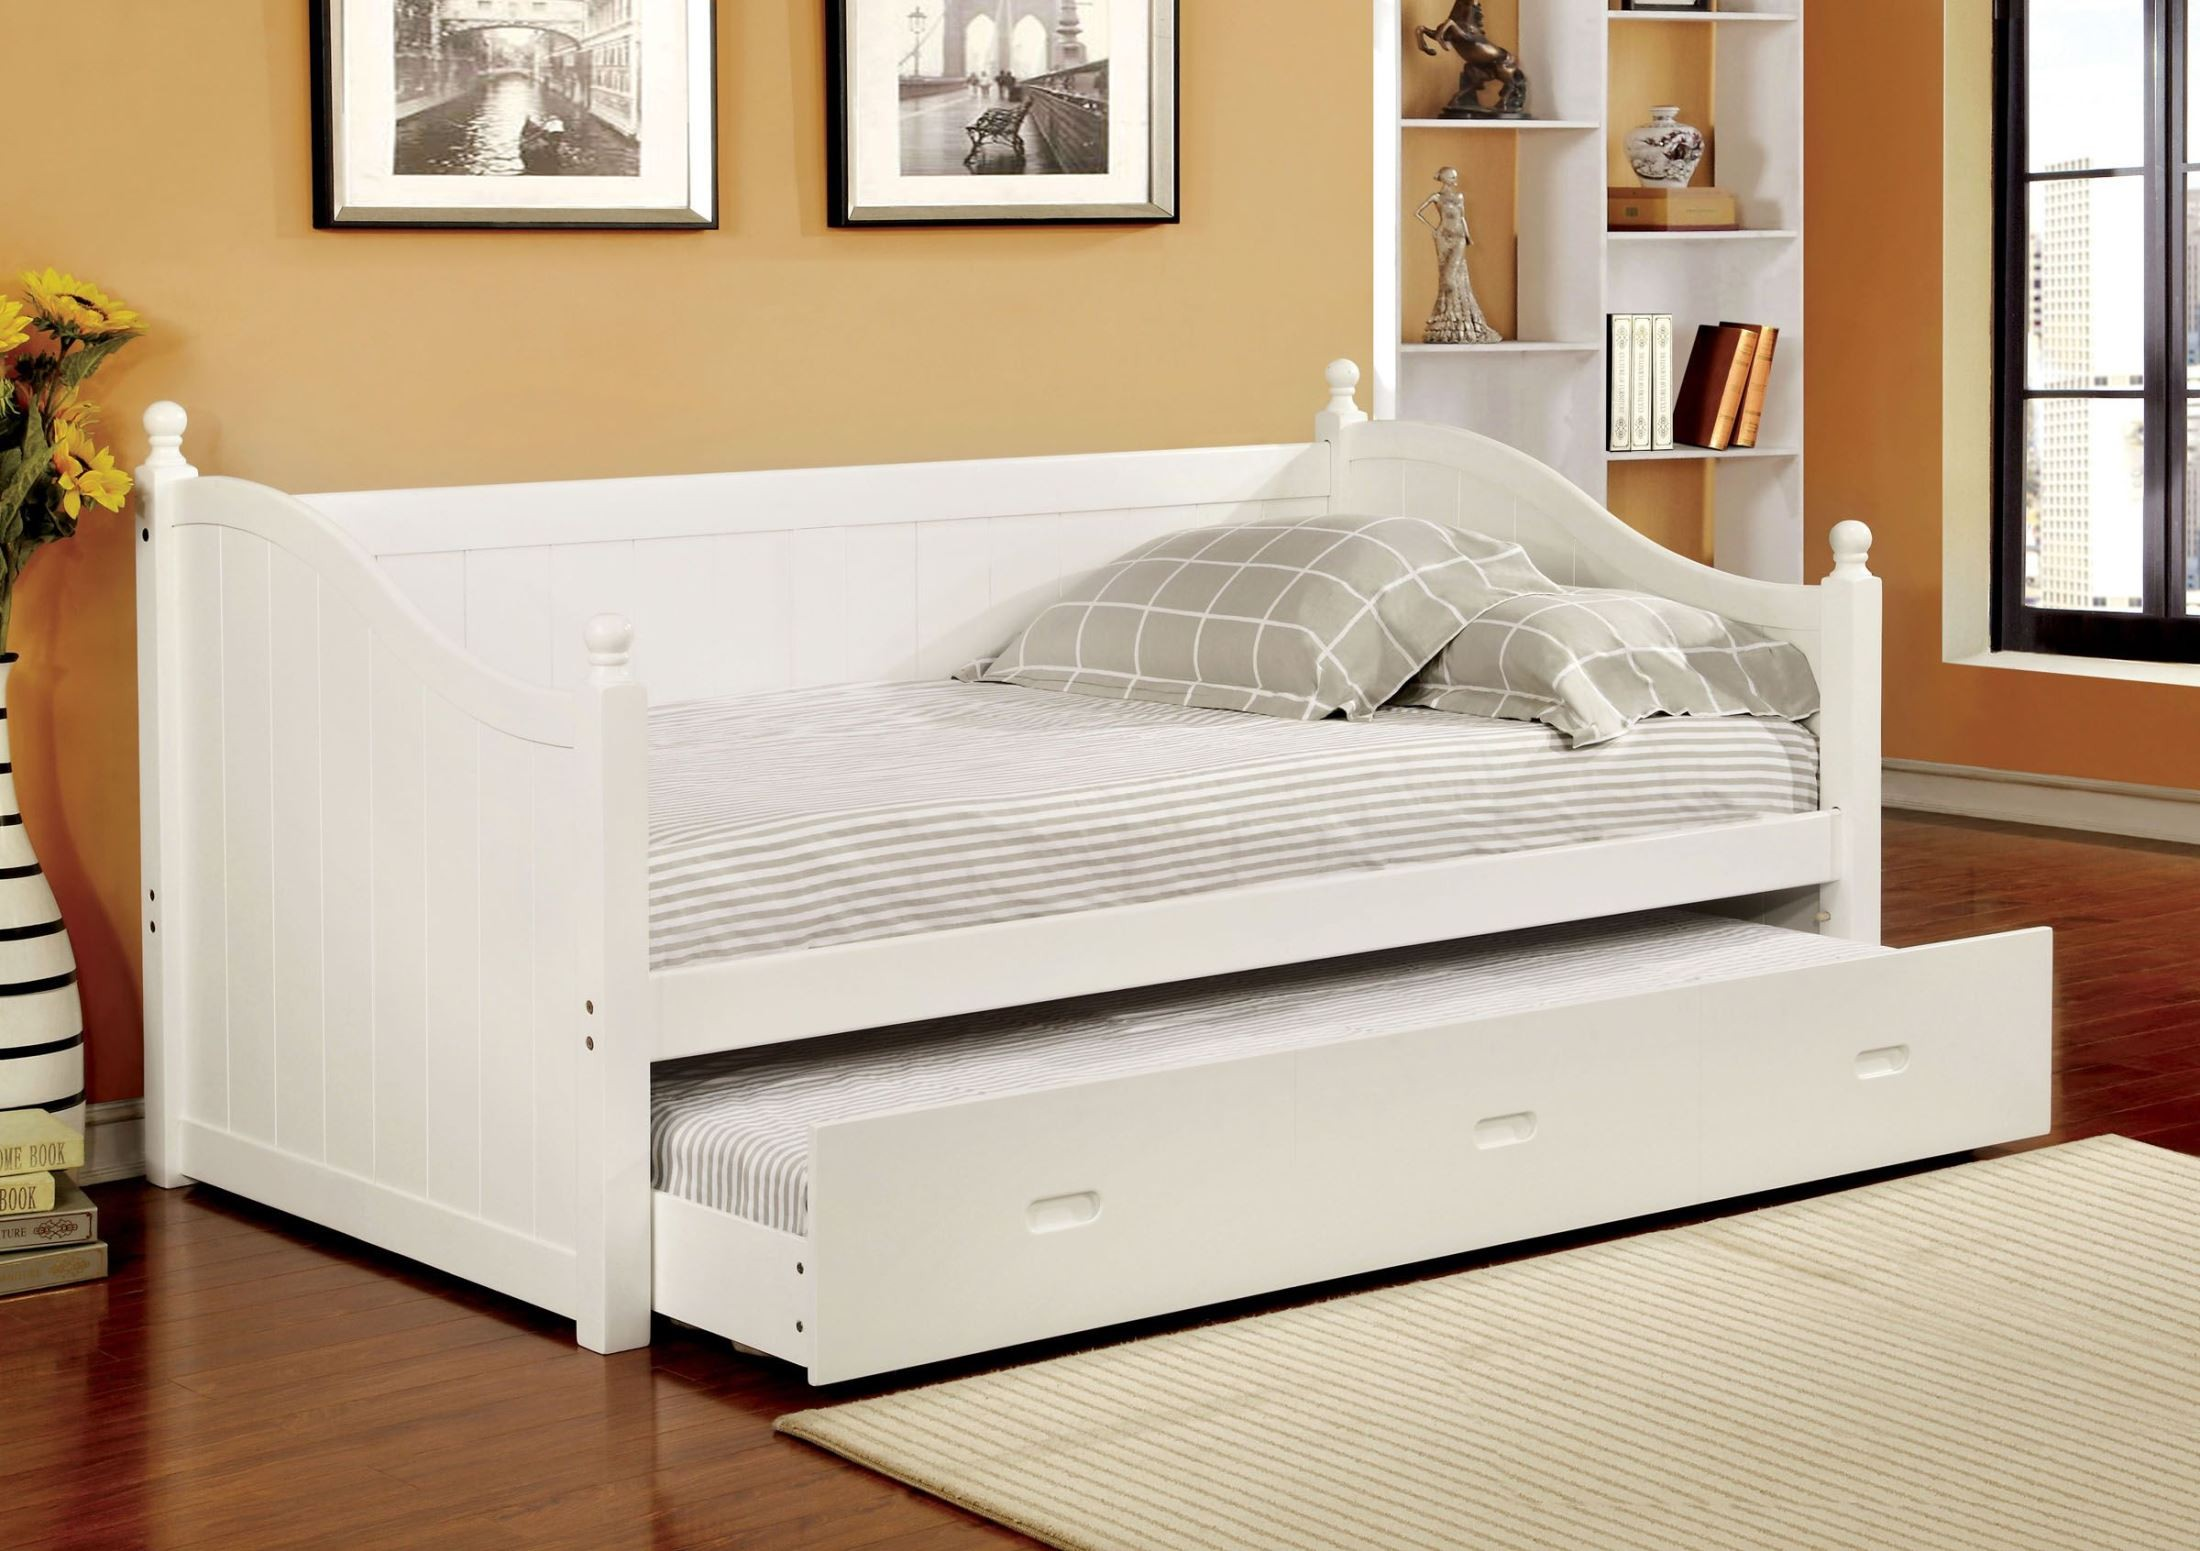 Walcott white twin trundle daybed from furniture of america cm1928wh bed coleman furniture White twin trundle bedroom set